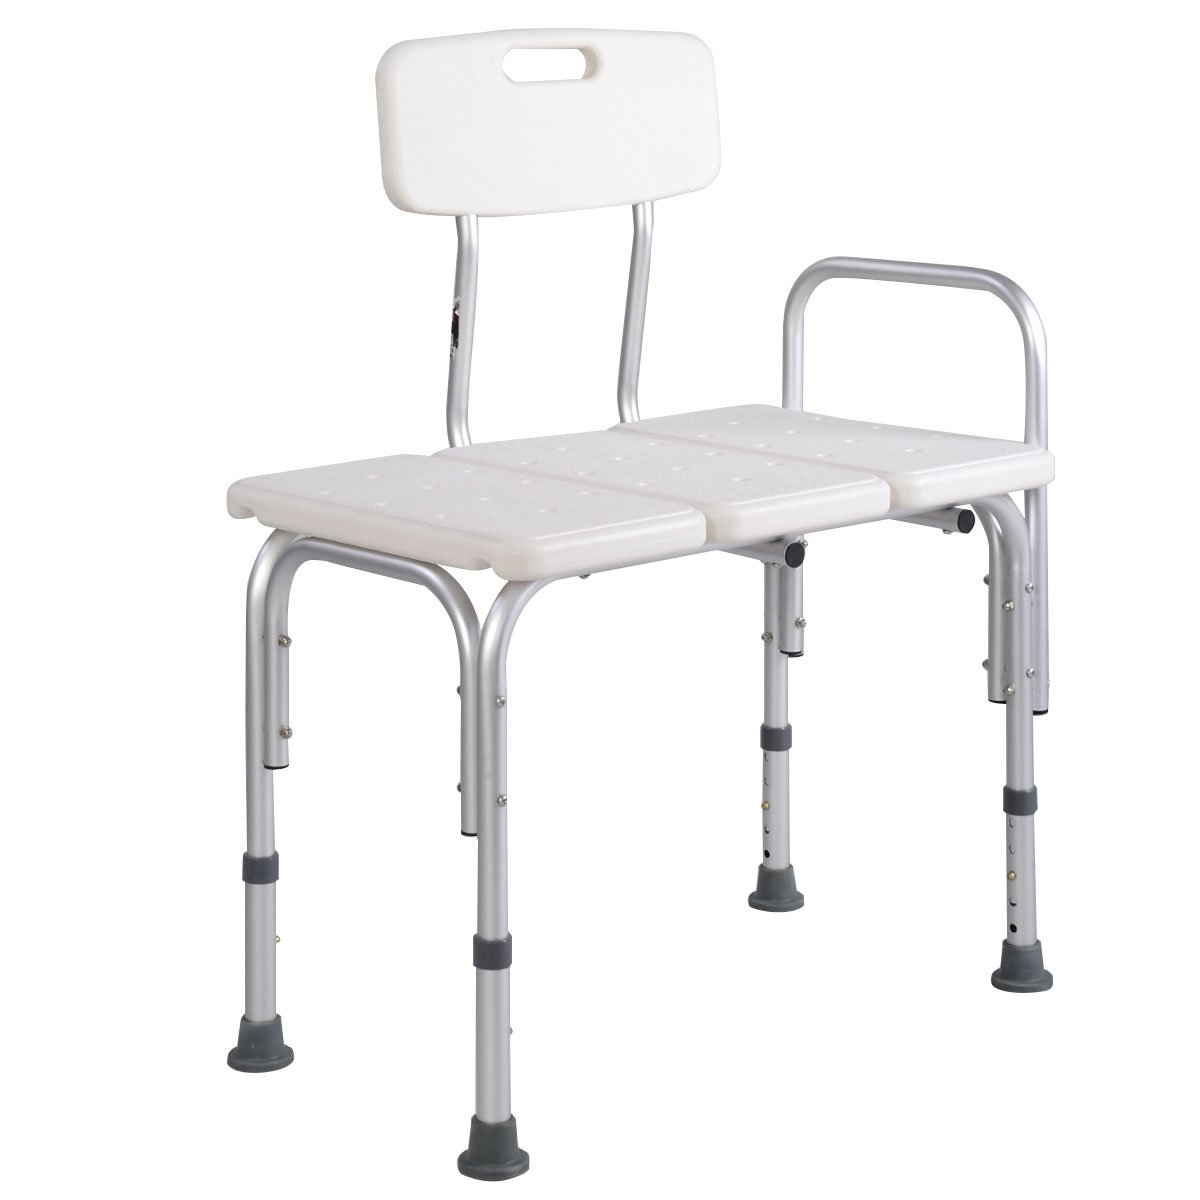 Bath Bench, WATERJOY 5 Height Adjustable Medical Bath Seat Stool Shower Chair with Back and Armrest, Bathroom Bath Tub Transfer Bench